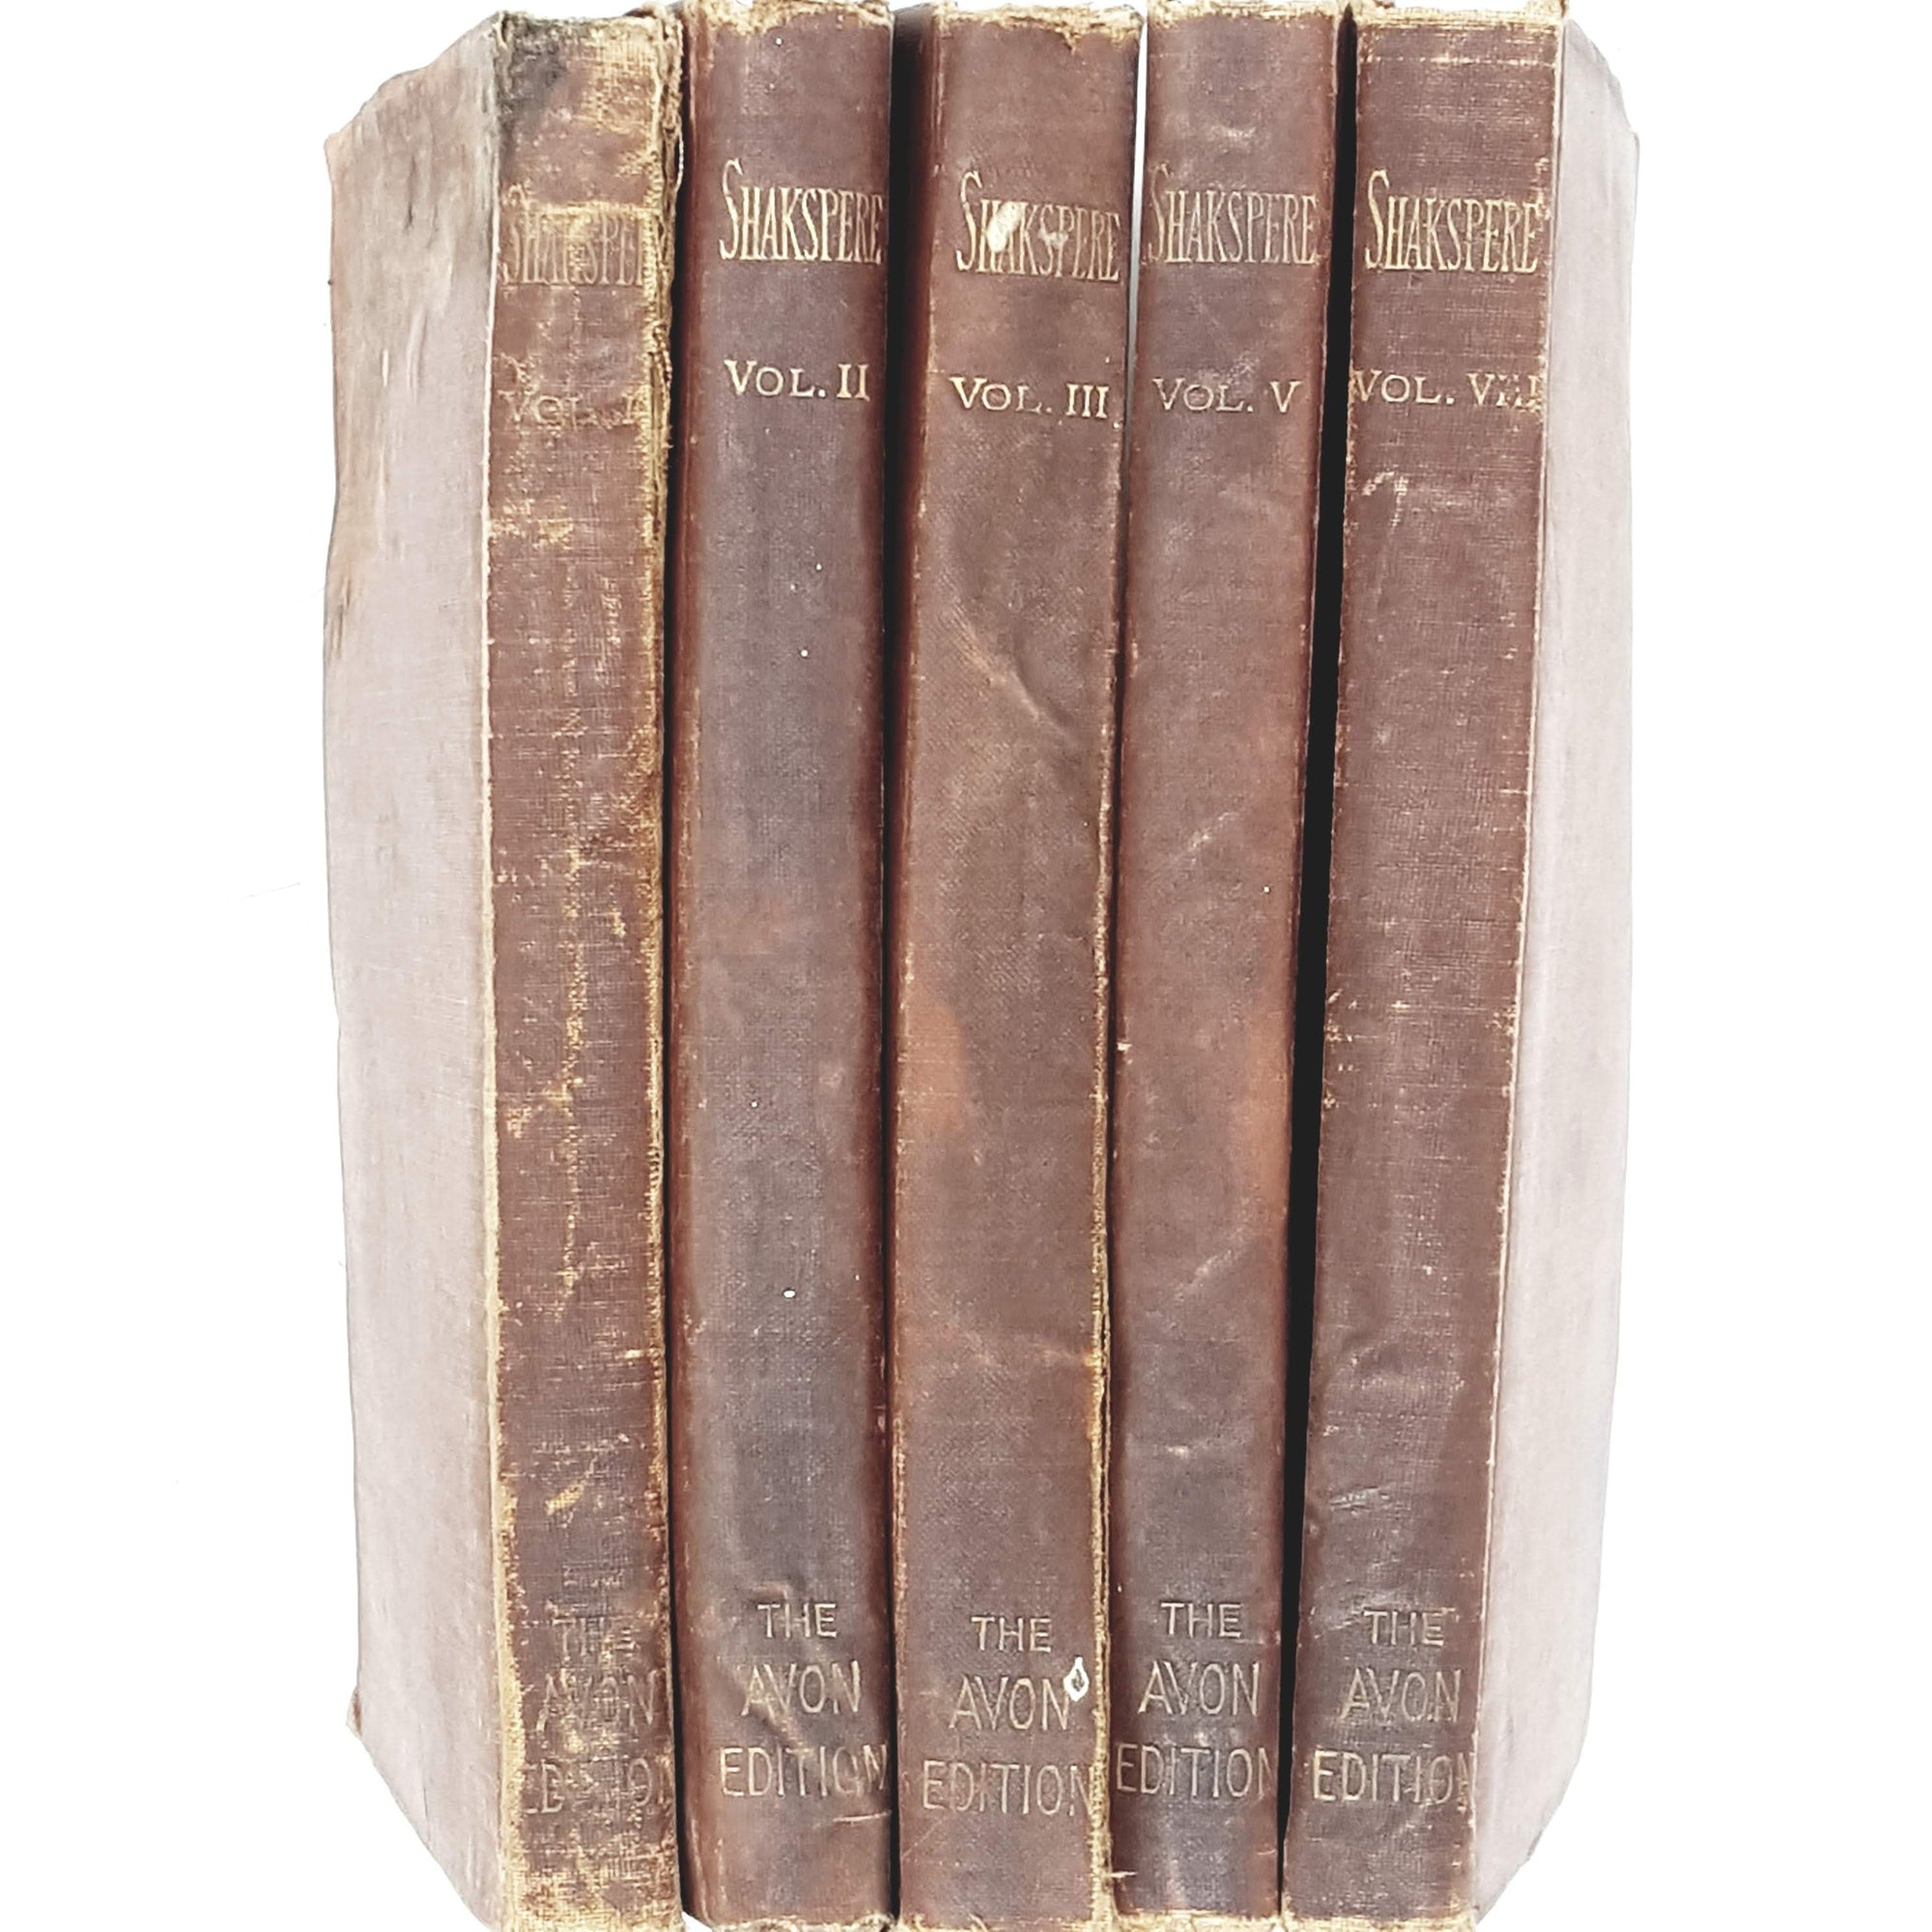 Illustrated Collection of William Shakespeare 1886